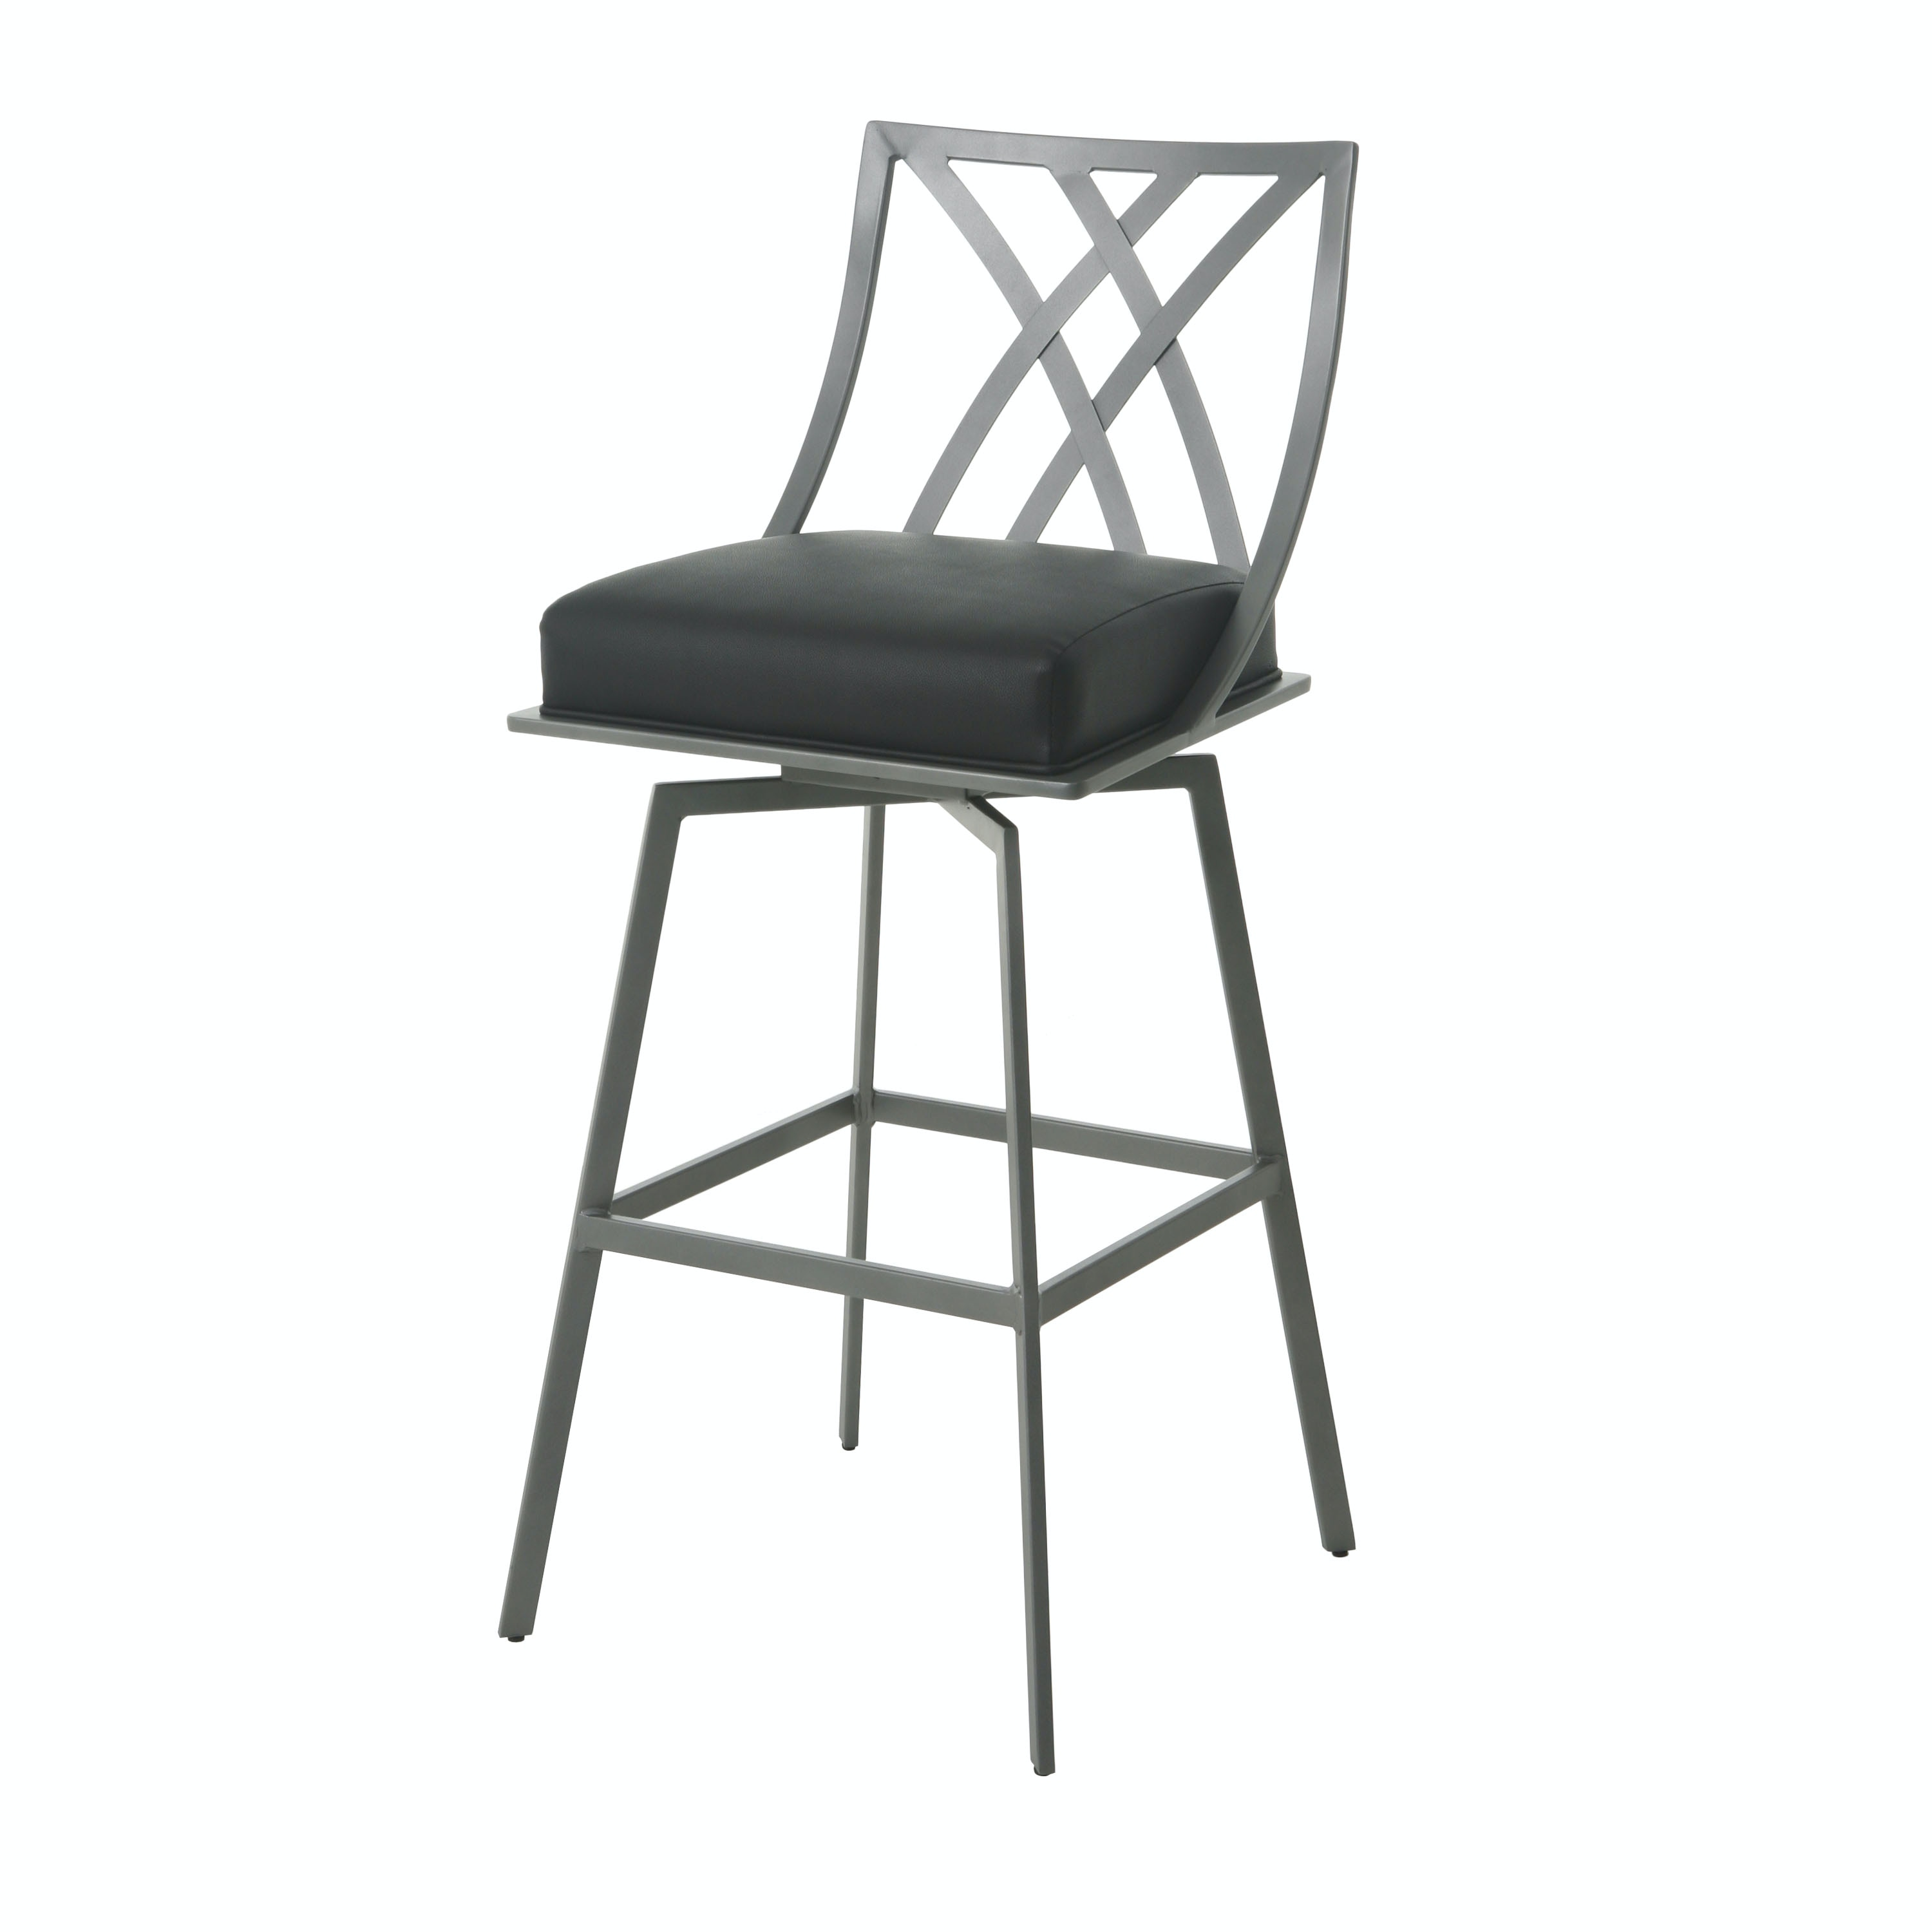 Pastel Furniture Iris Swivel Barstool IR 219 NK 142 26